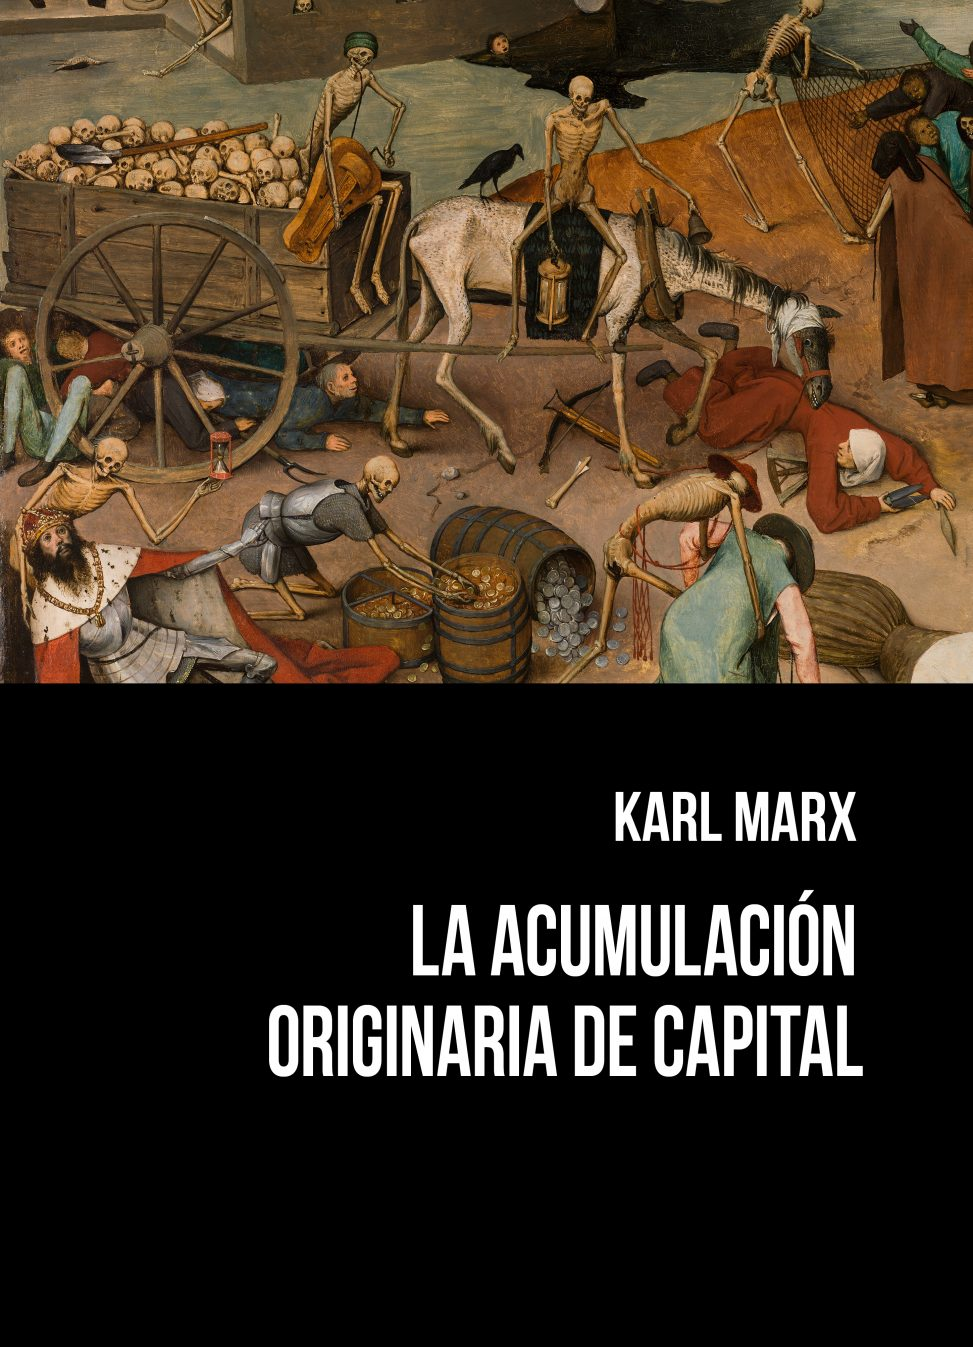 La acumulación originaria de capital. 9788409094844